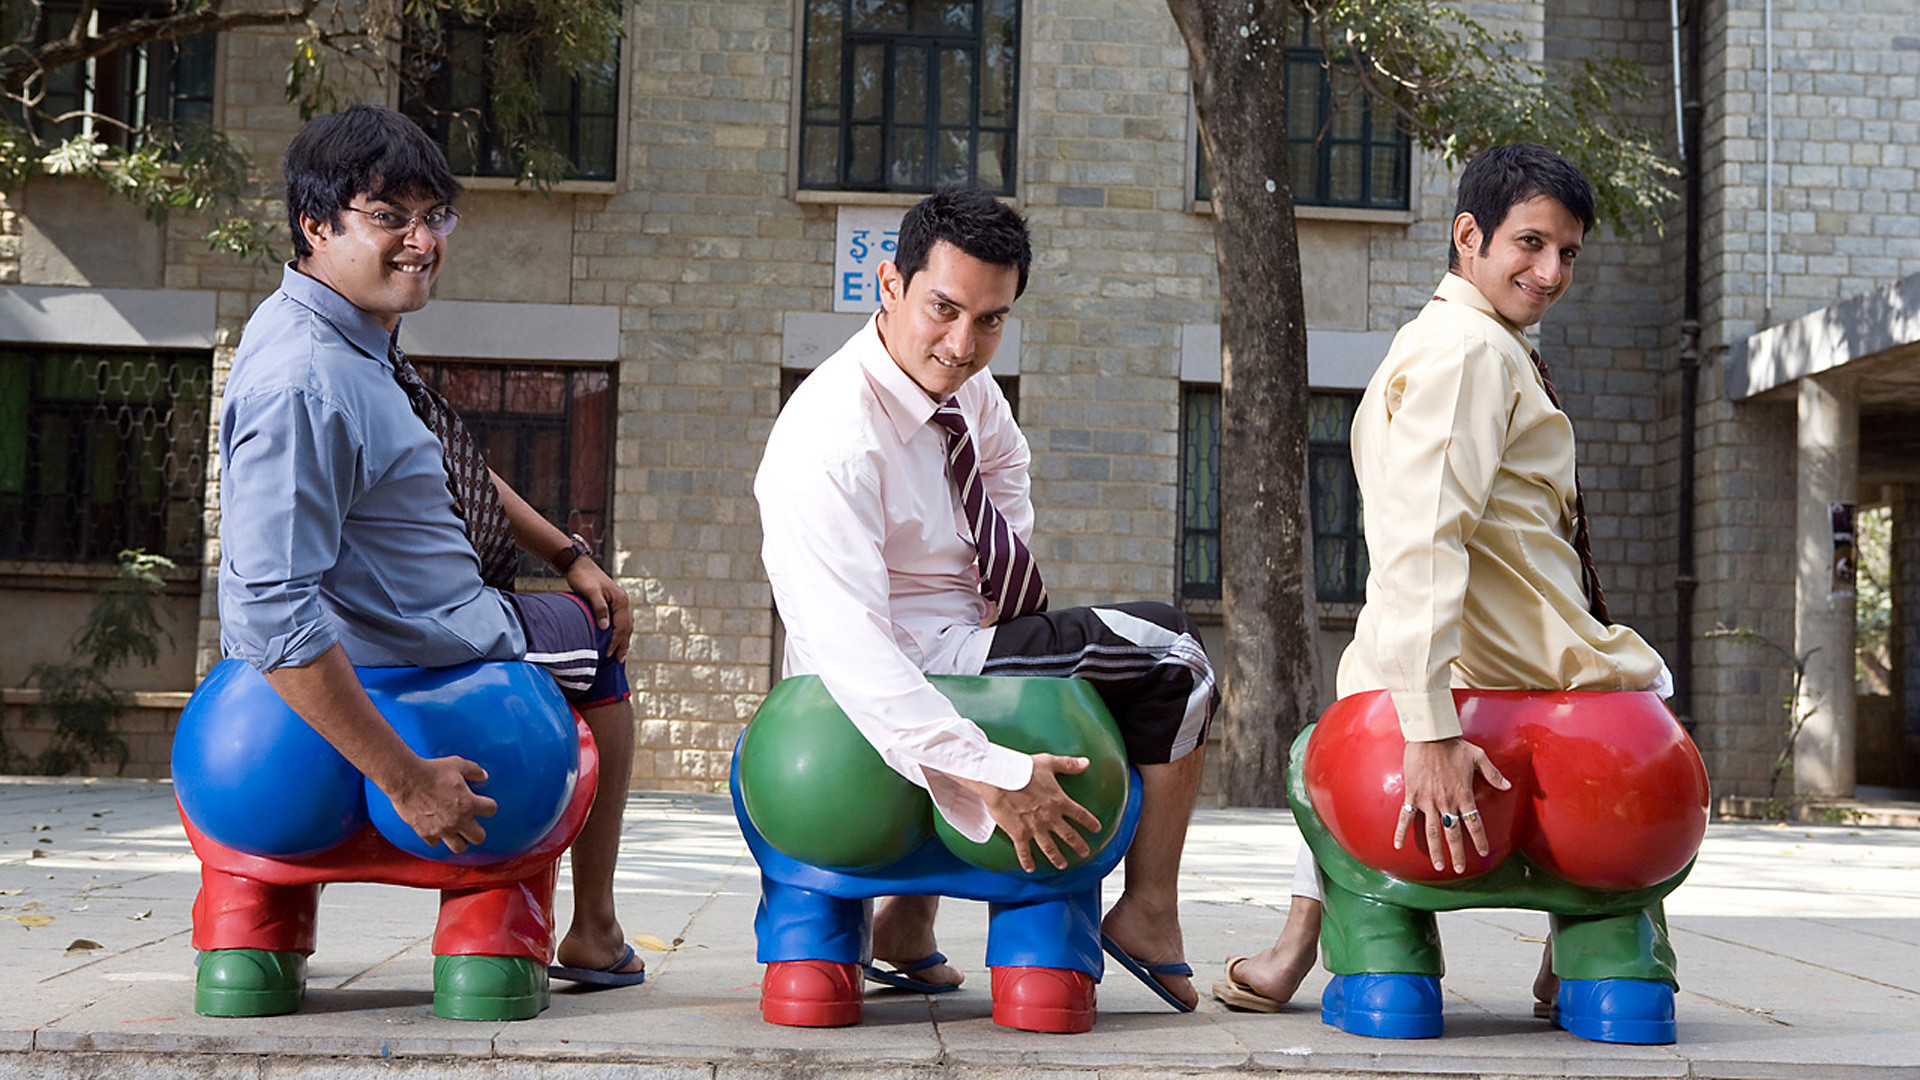 3 Idiots Images Wallpaper HD And Background